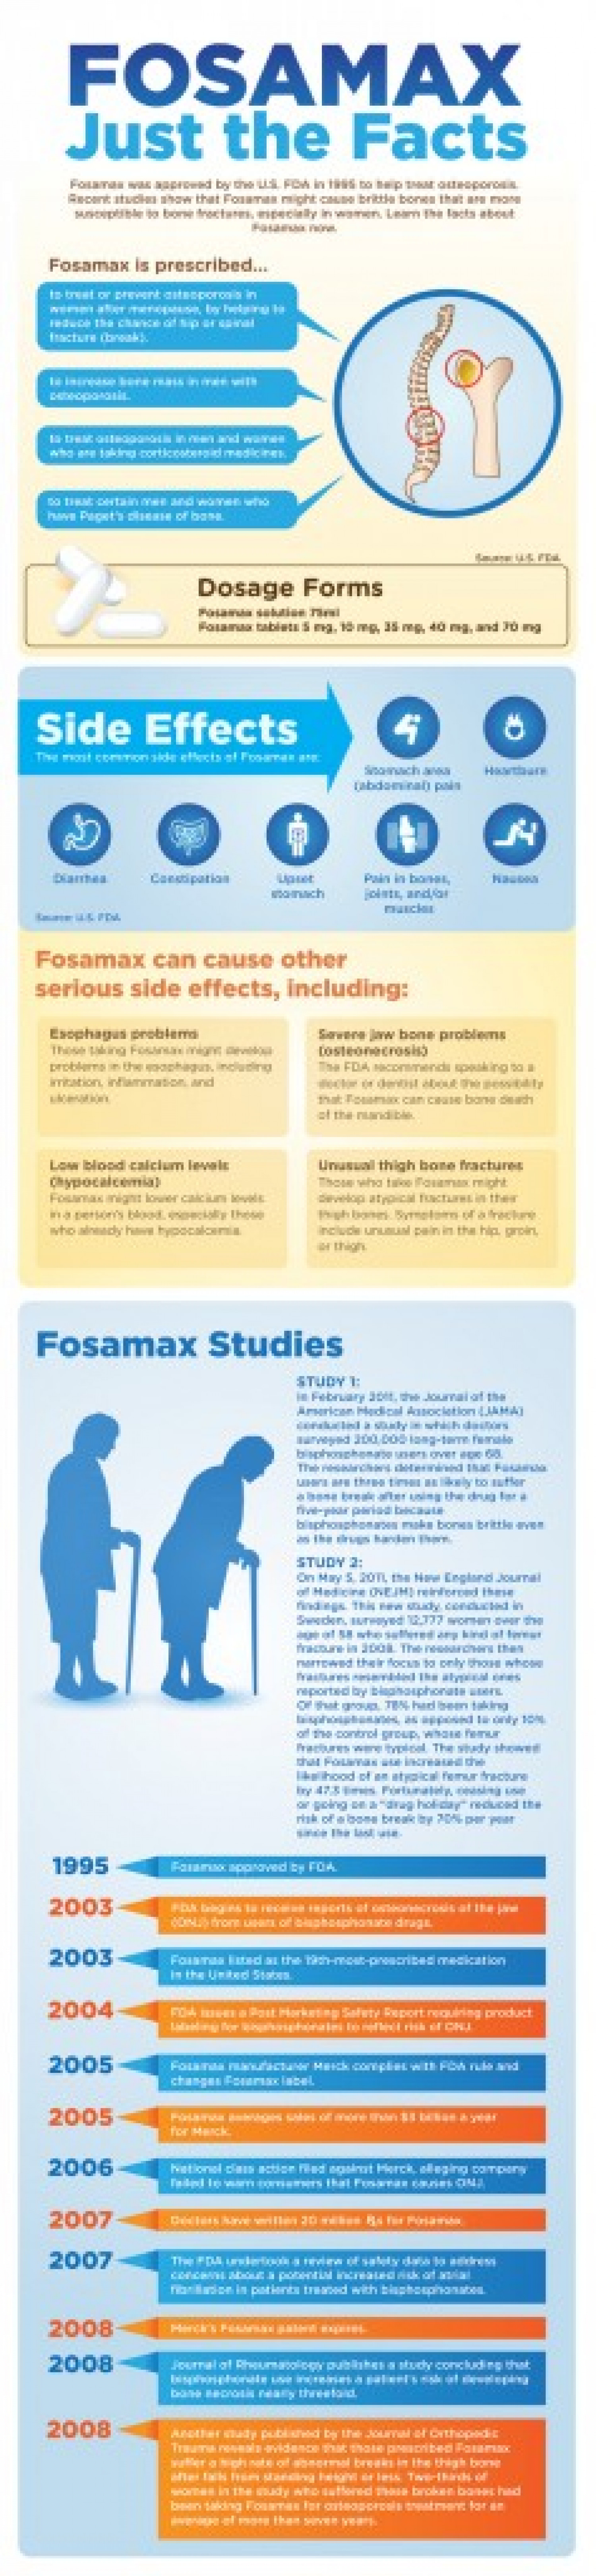 Fosamax Information Graphic Infographic